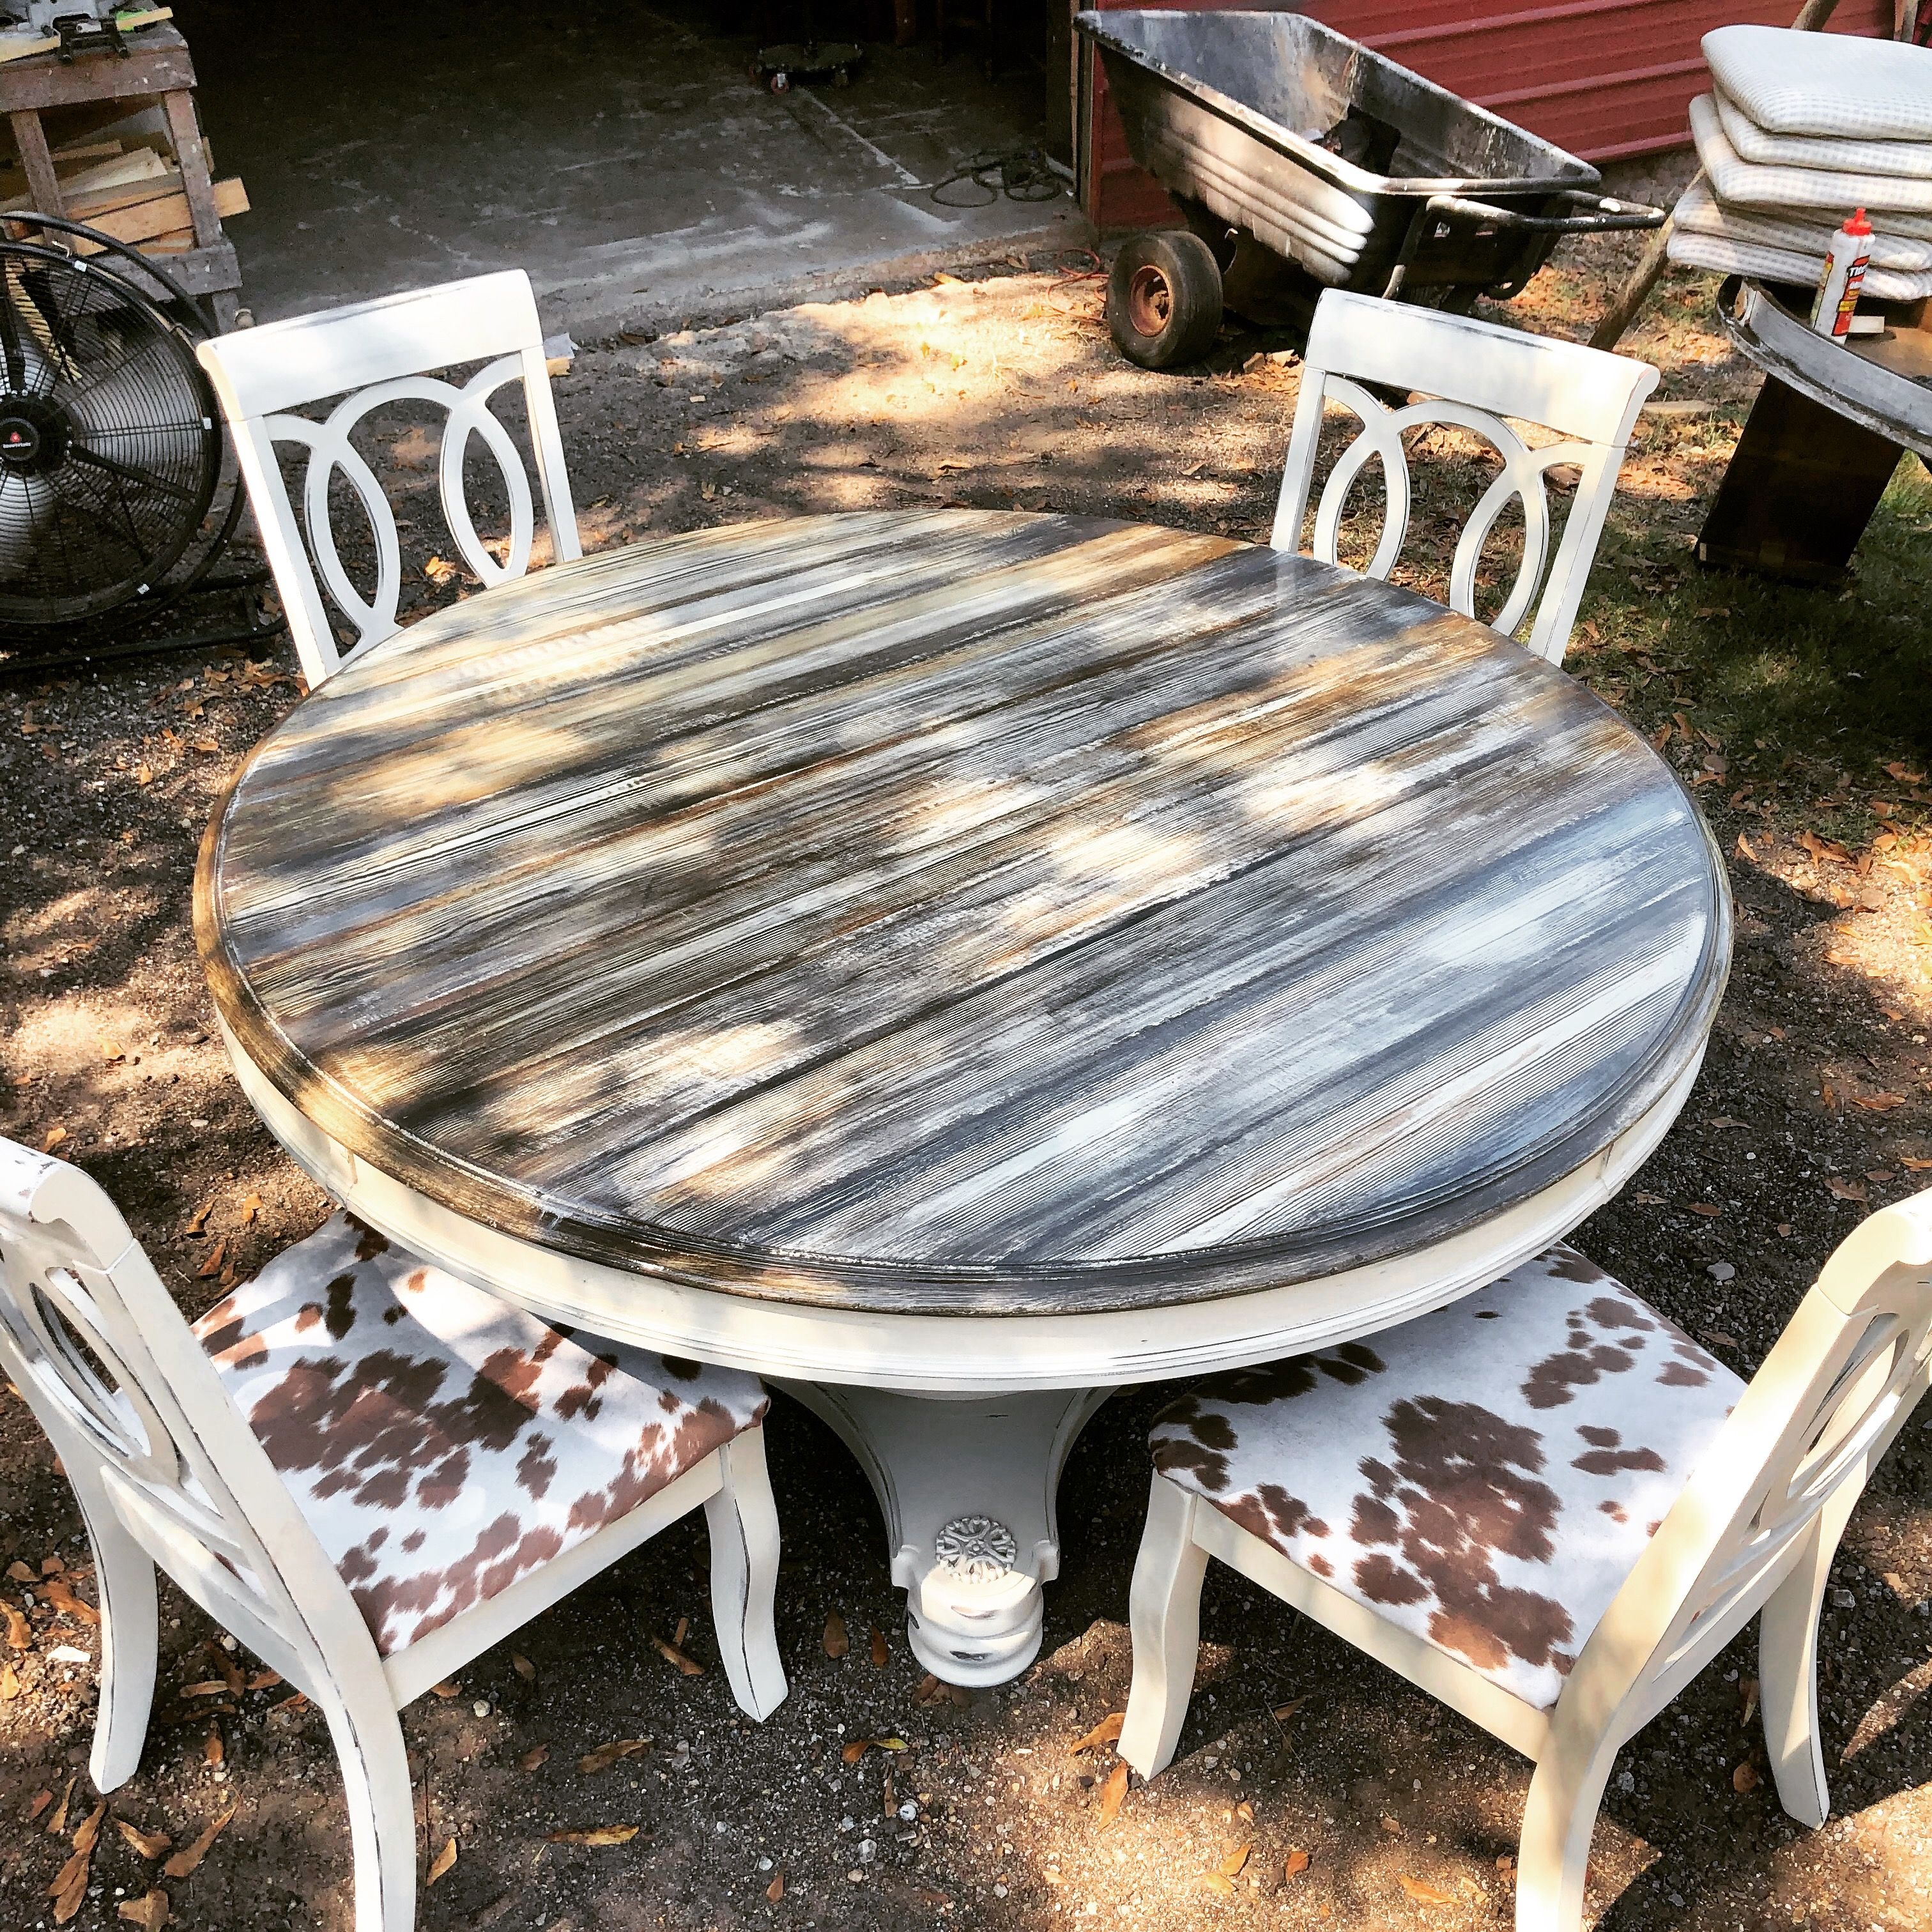 We restored this beautiful table using a blend of two